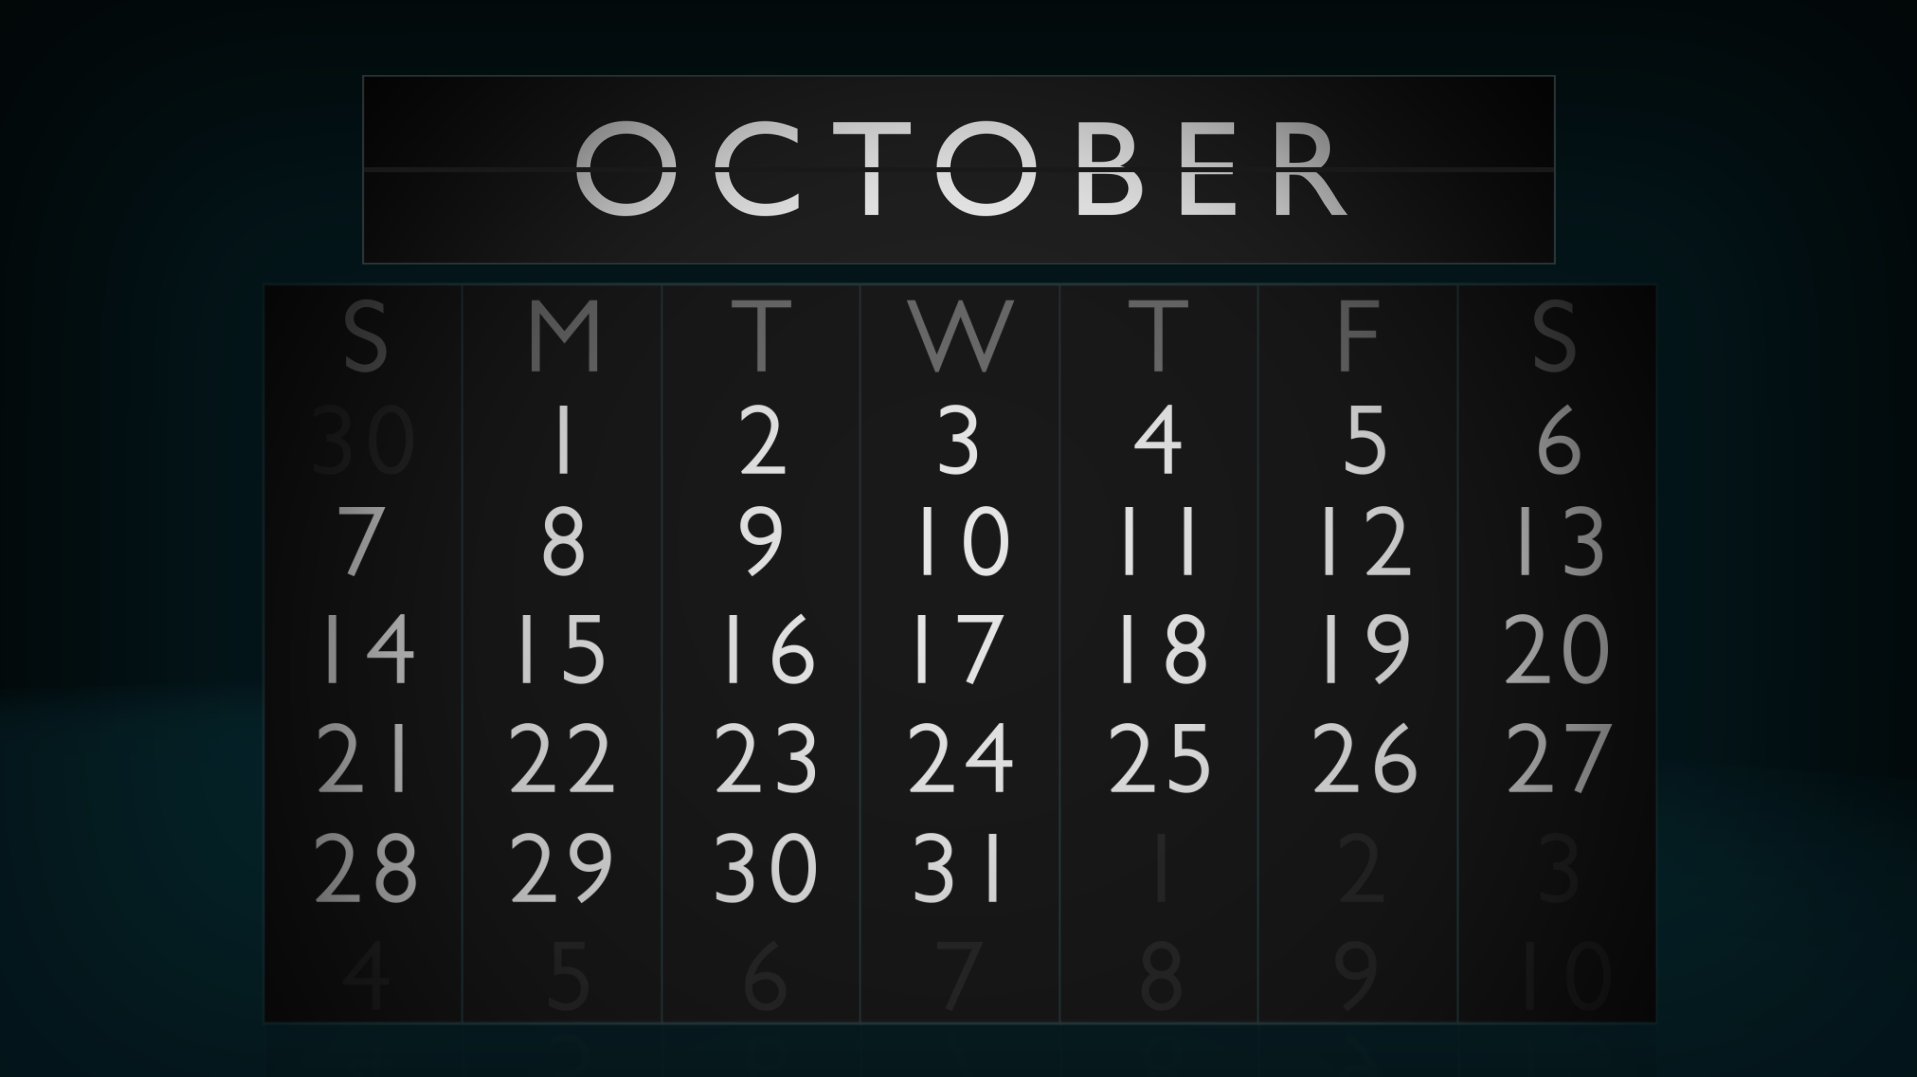 October iGaming Calendar, a summary of online gambling conferences and poker tournaments